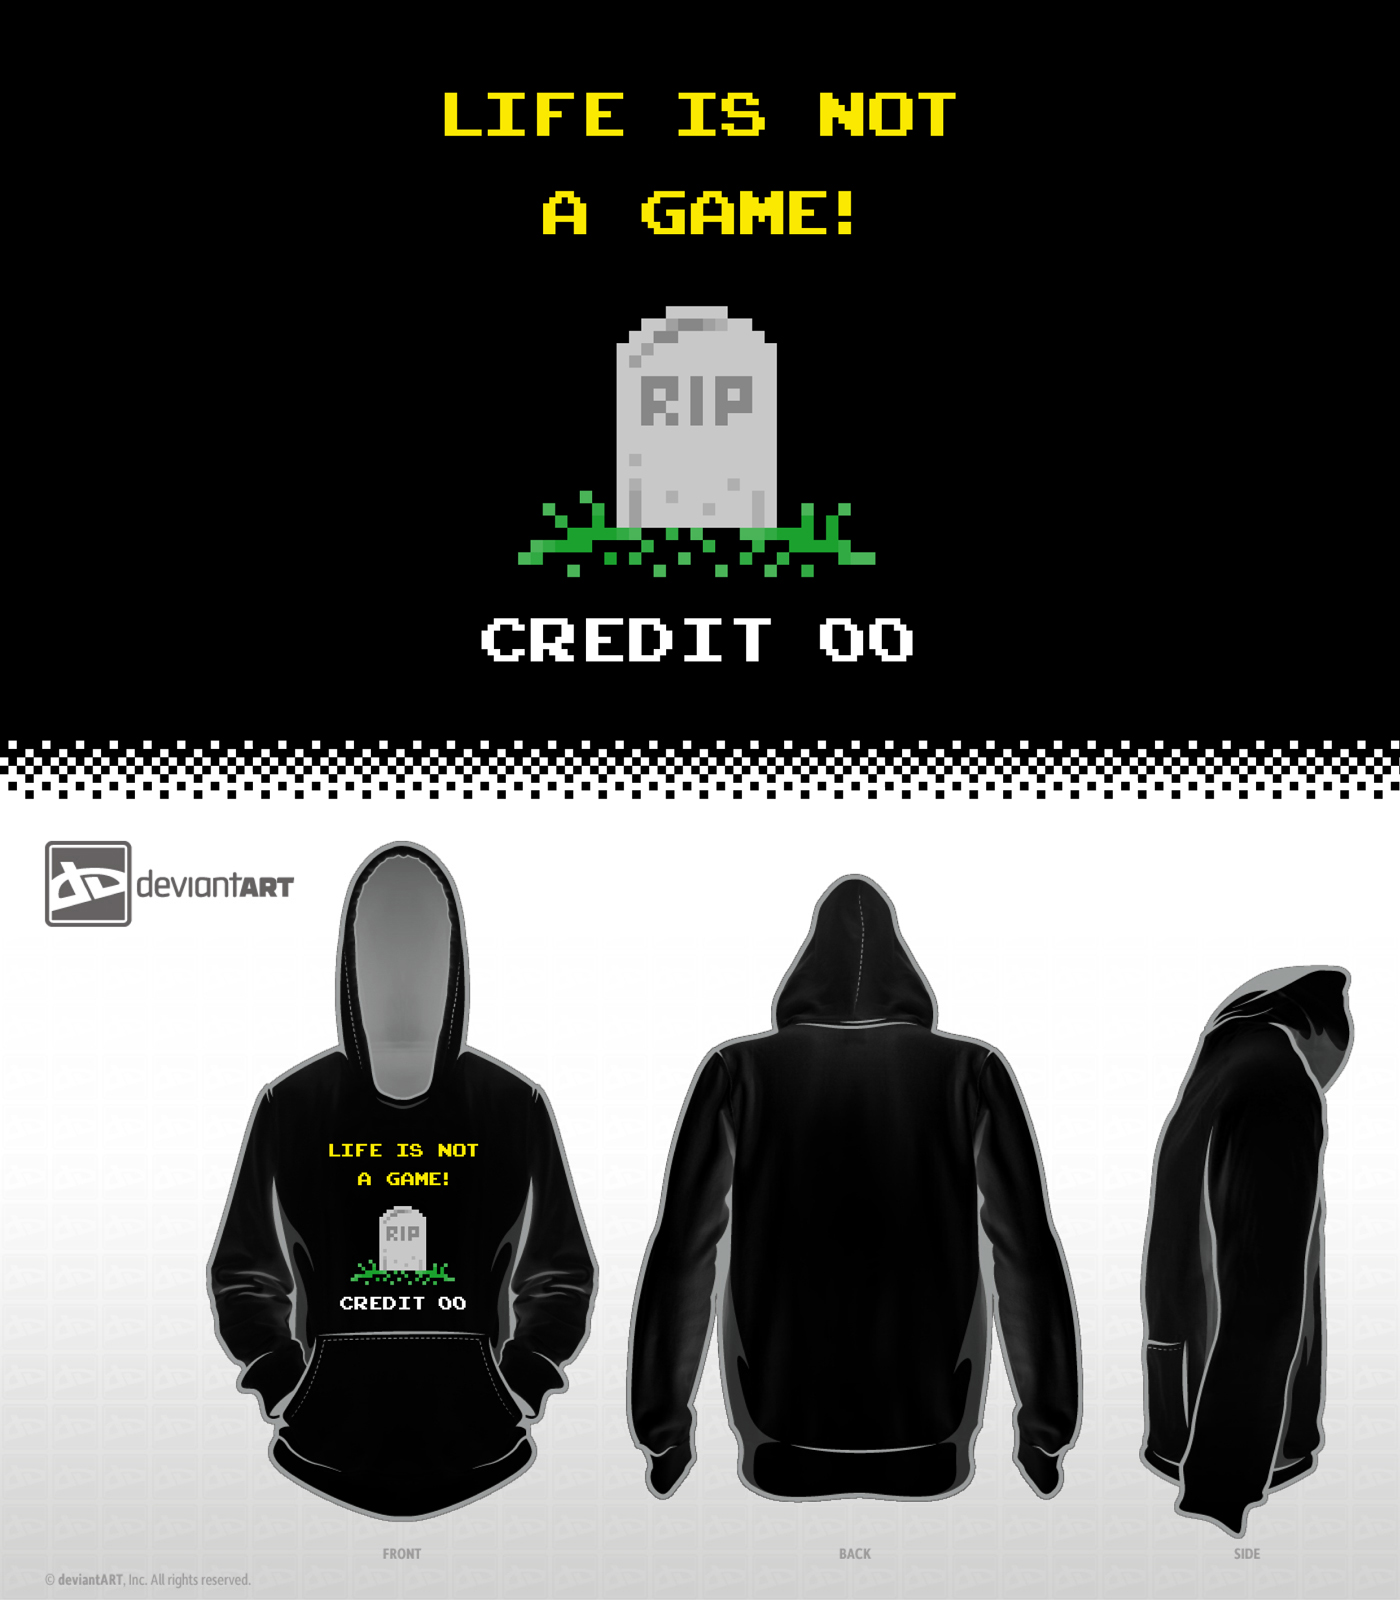 8-Bit Design Challenge - Life is not a Game by mantarosan